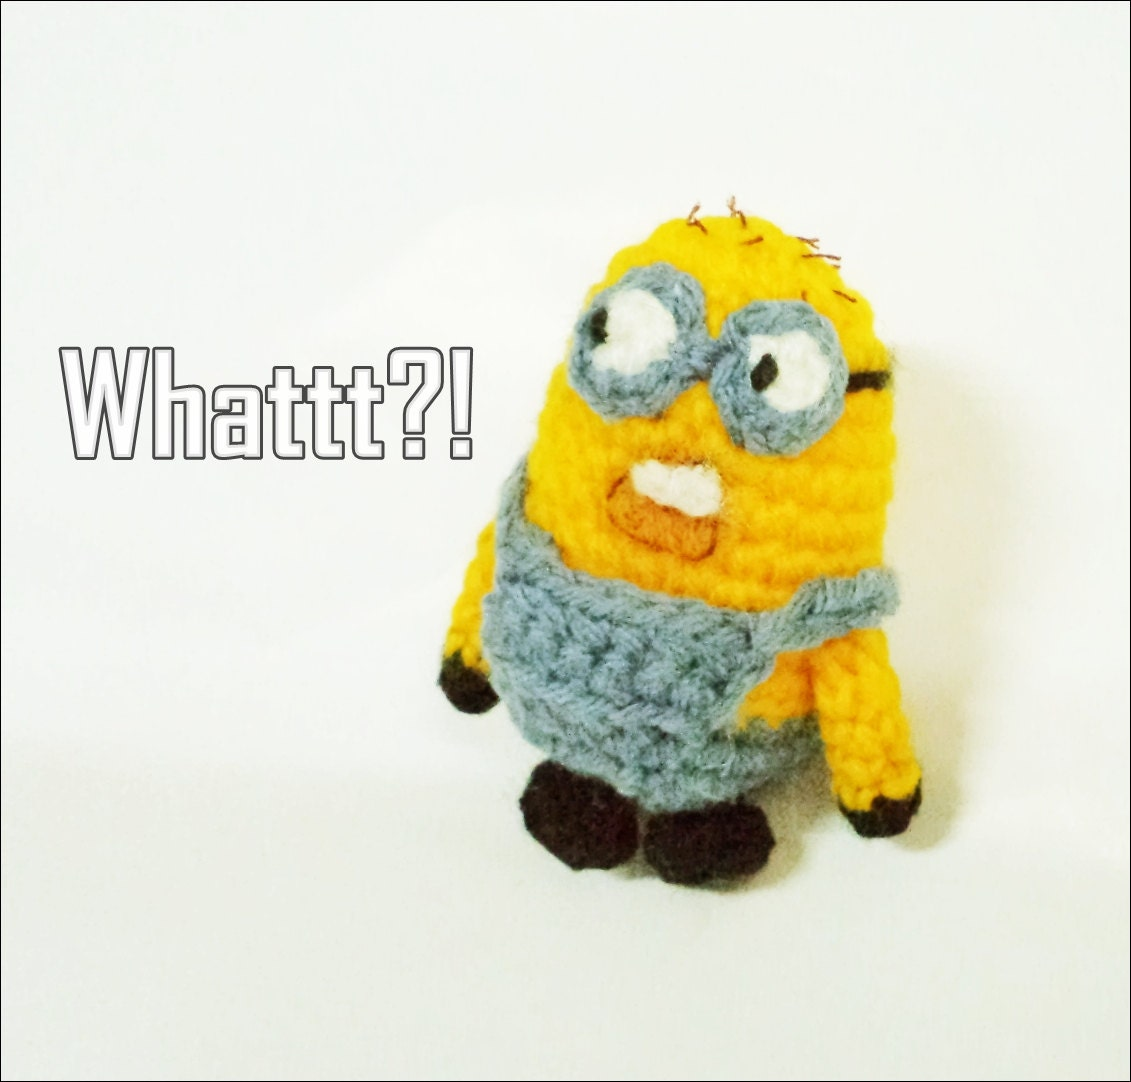 Amigurumi Minion Etsy : Items similar to Minion What - Charactor DOll , Amigurumi ...